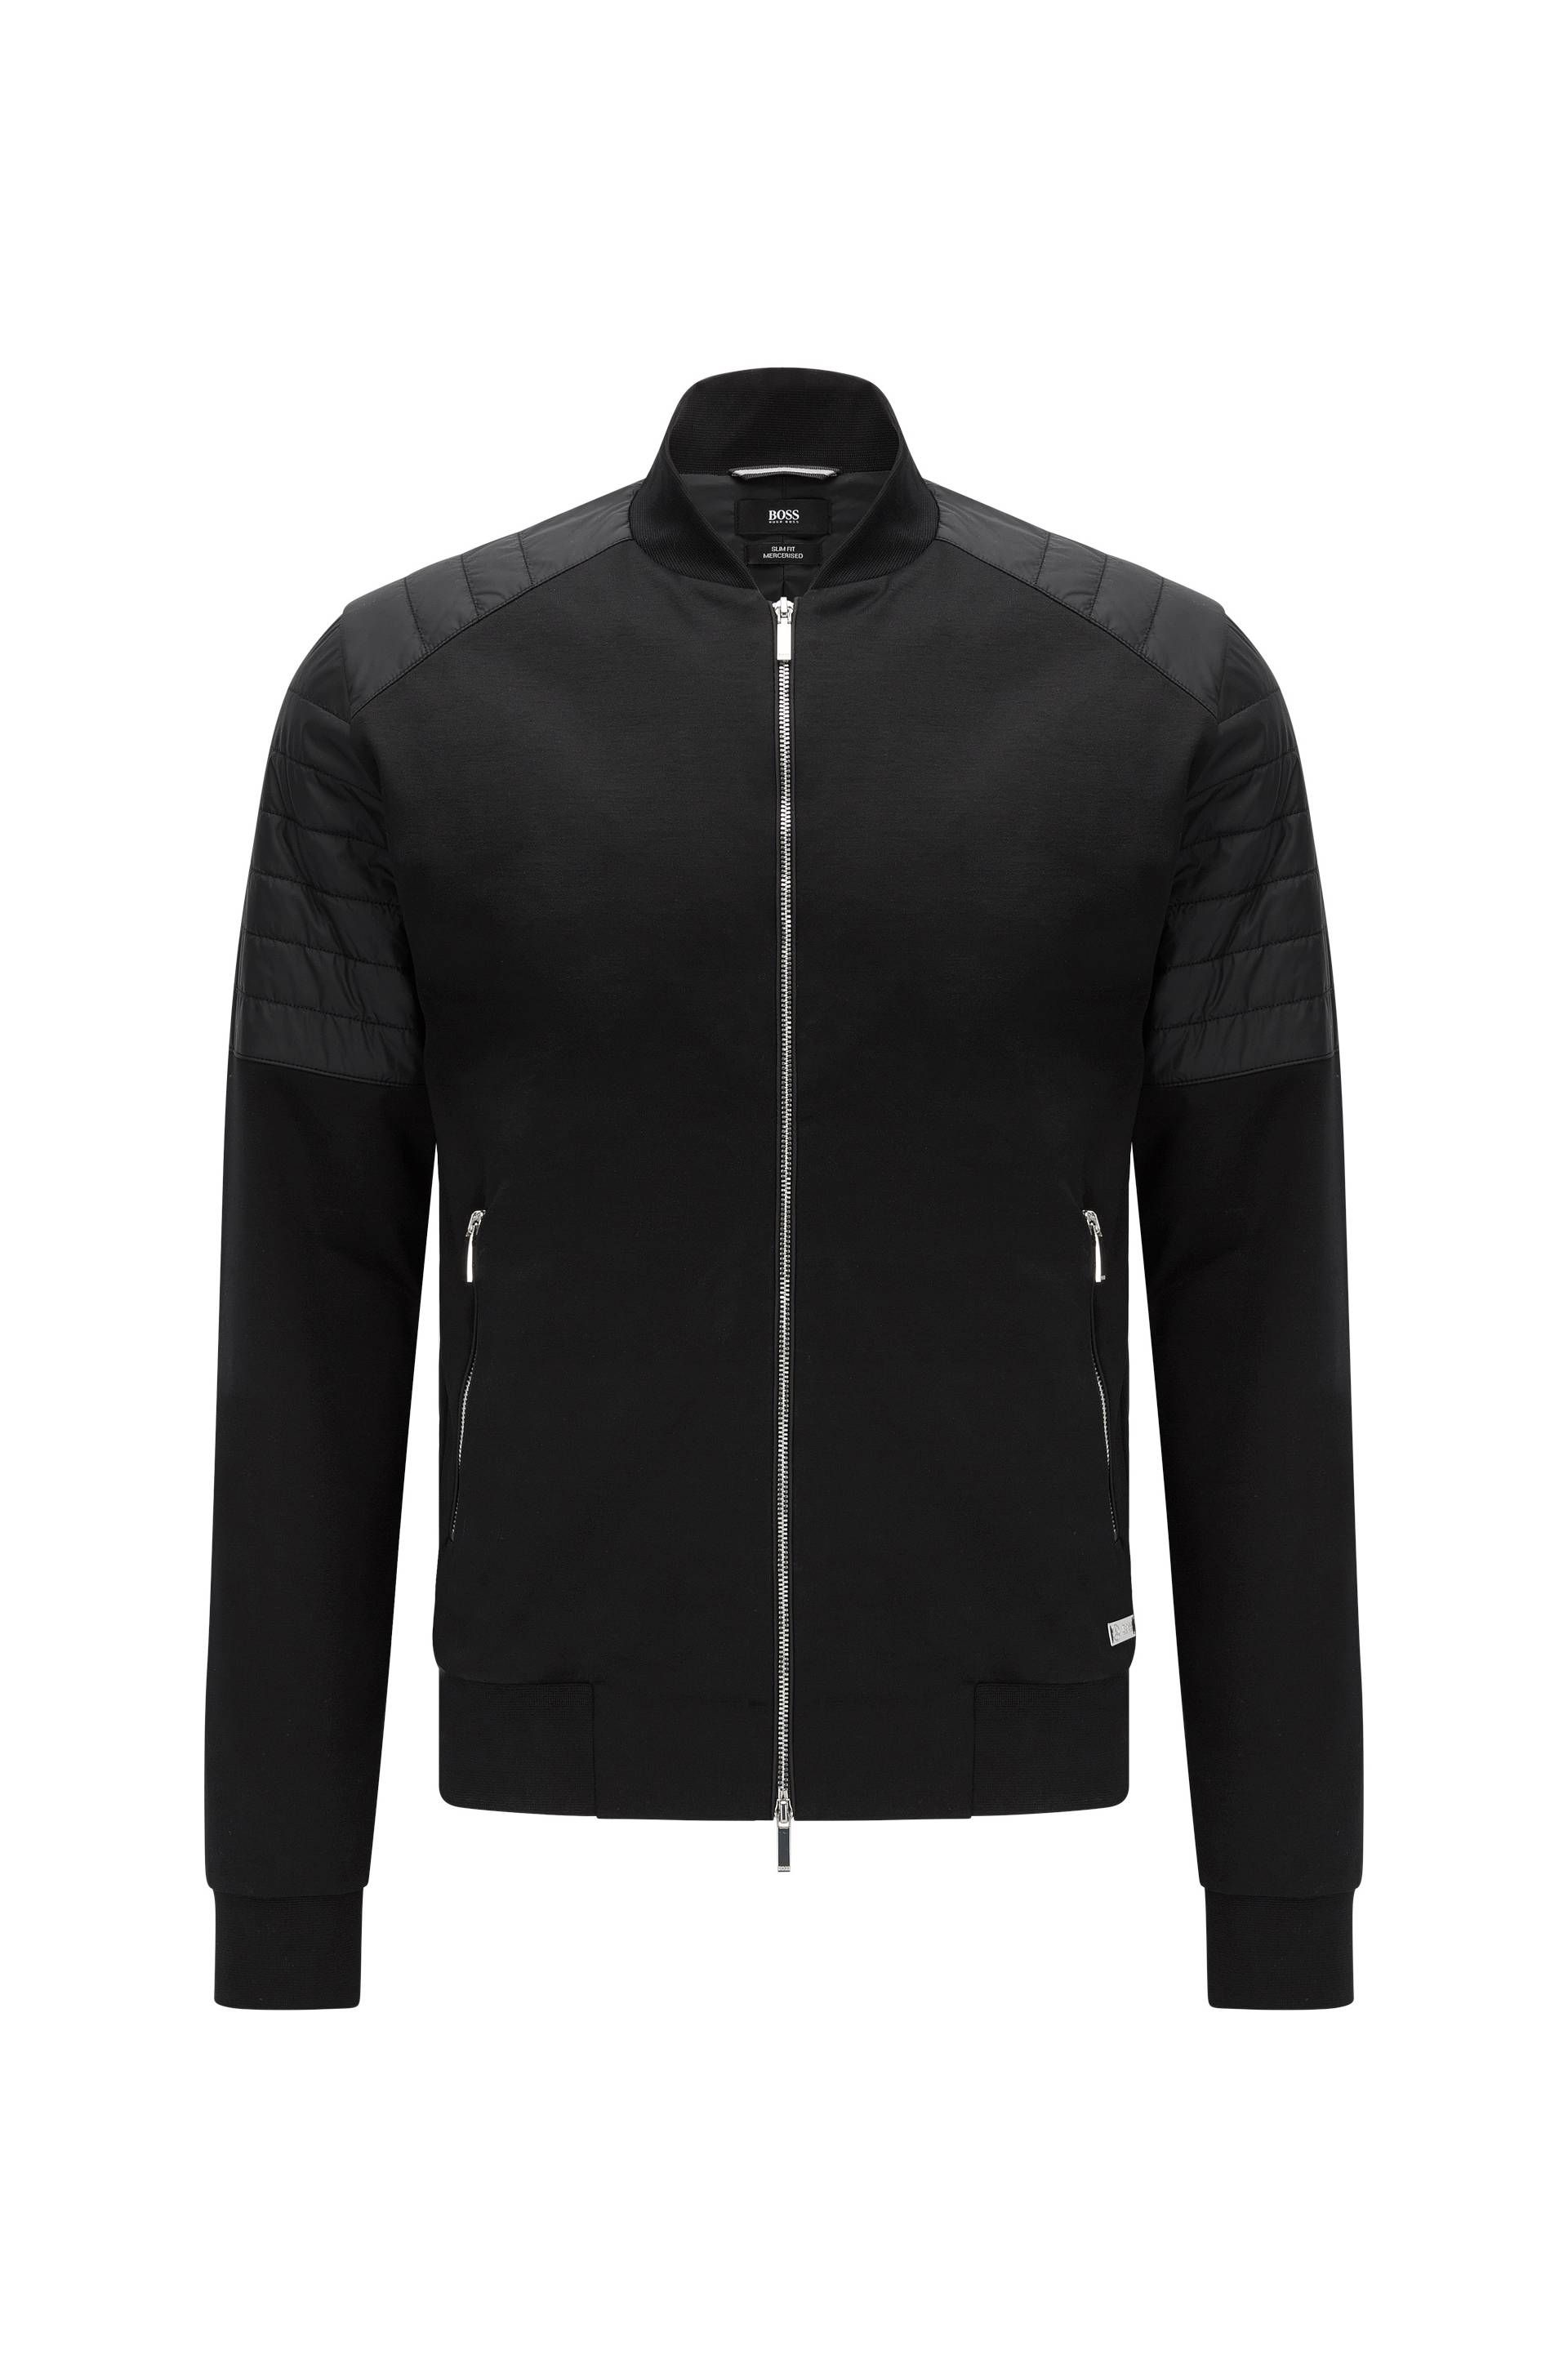 8dde66be Slim-fit sweatshirt jacket in mercerised stretch cotton: 'Salea 07' from  the Mercedes-Benz Collection